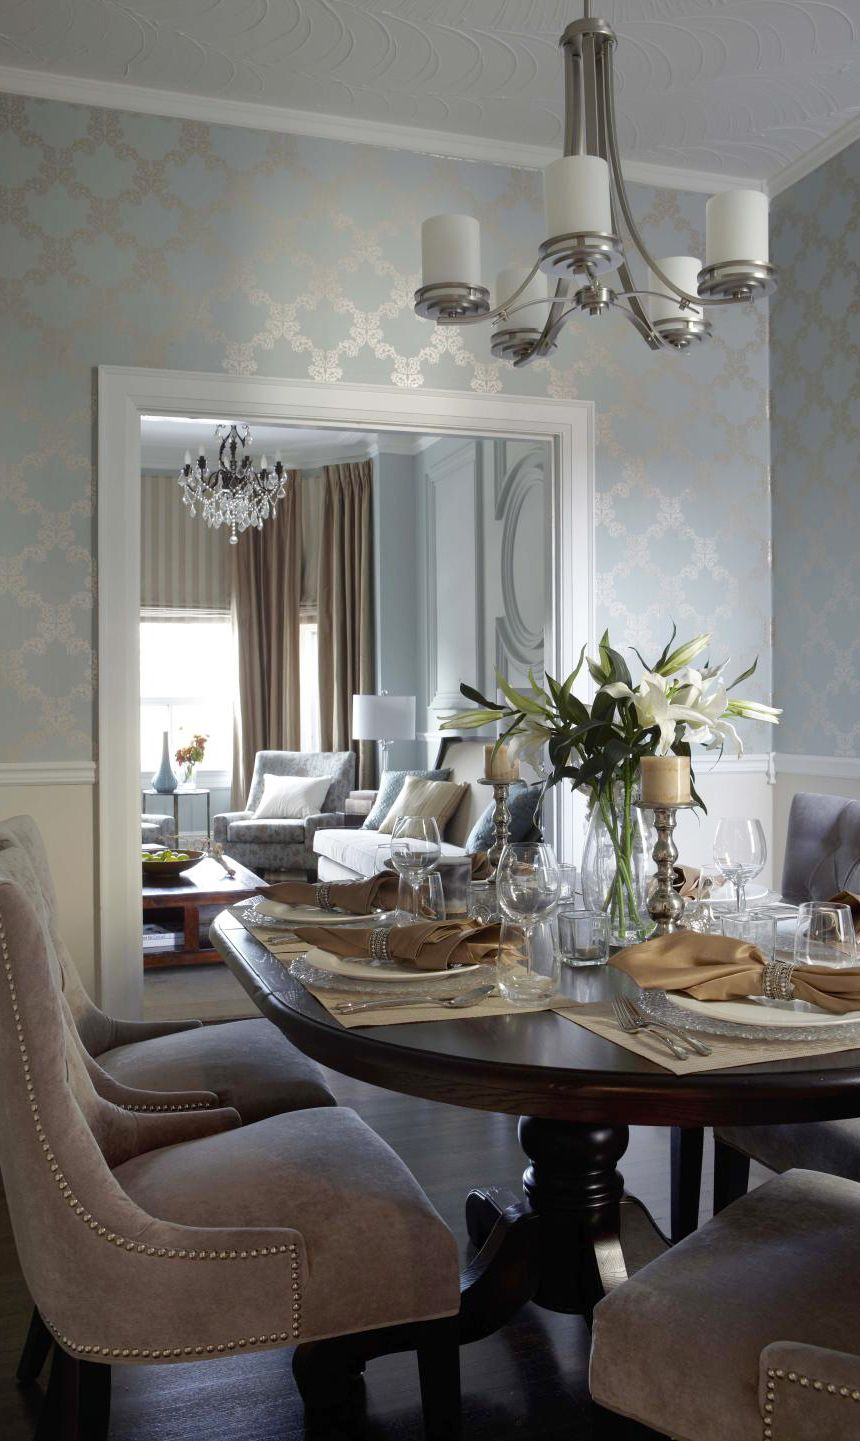 Contemporary dining fixture in brush nickel finish and traditional crystal chandelier in bronze finish in living room.  Love the wallpaper!